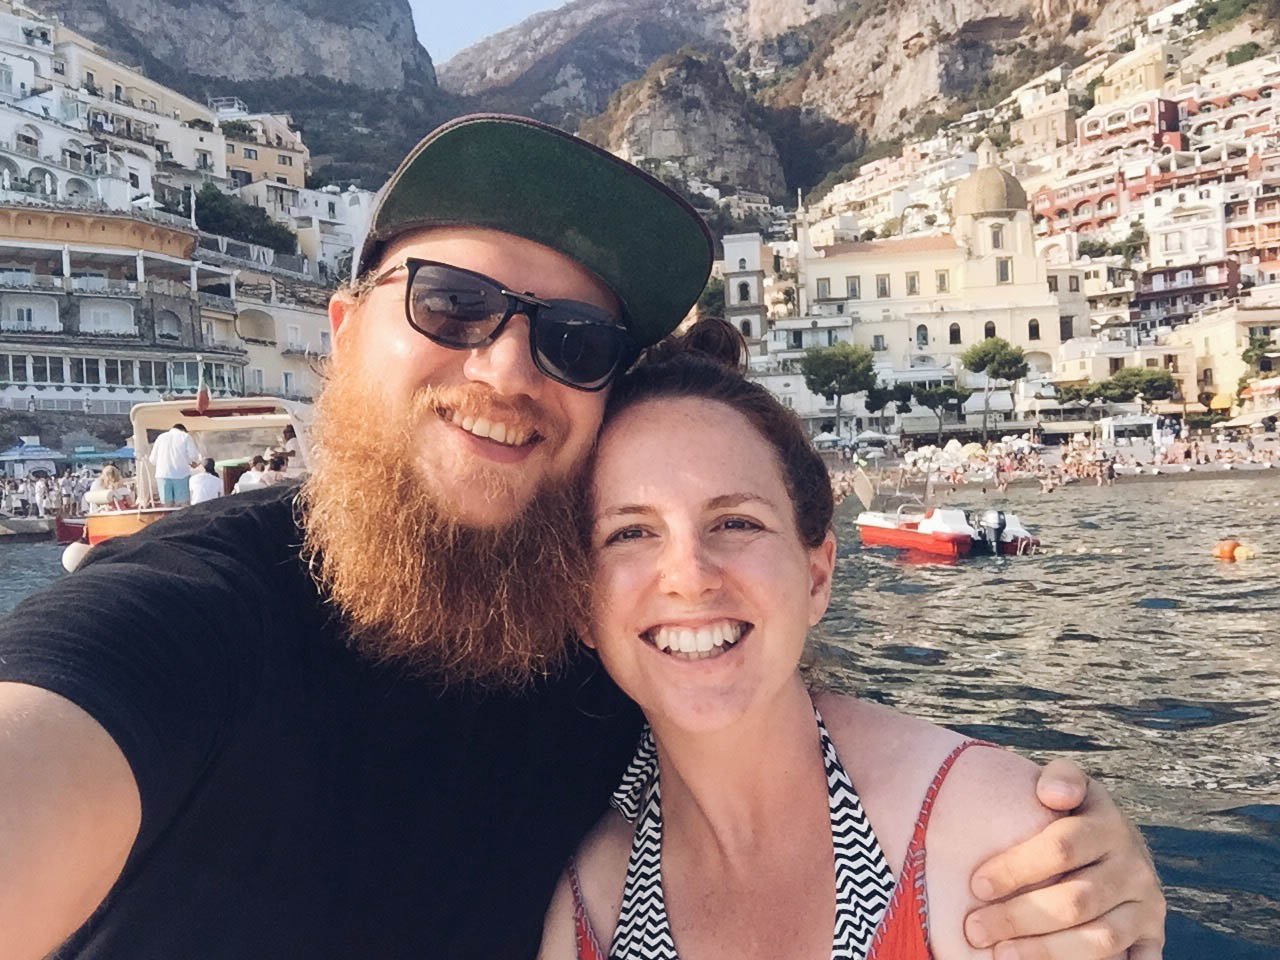 Victoria and Steve in Positano, Italy